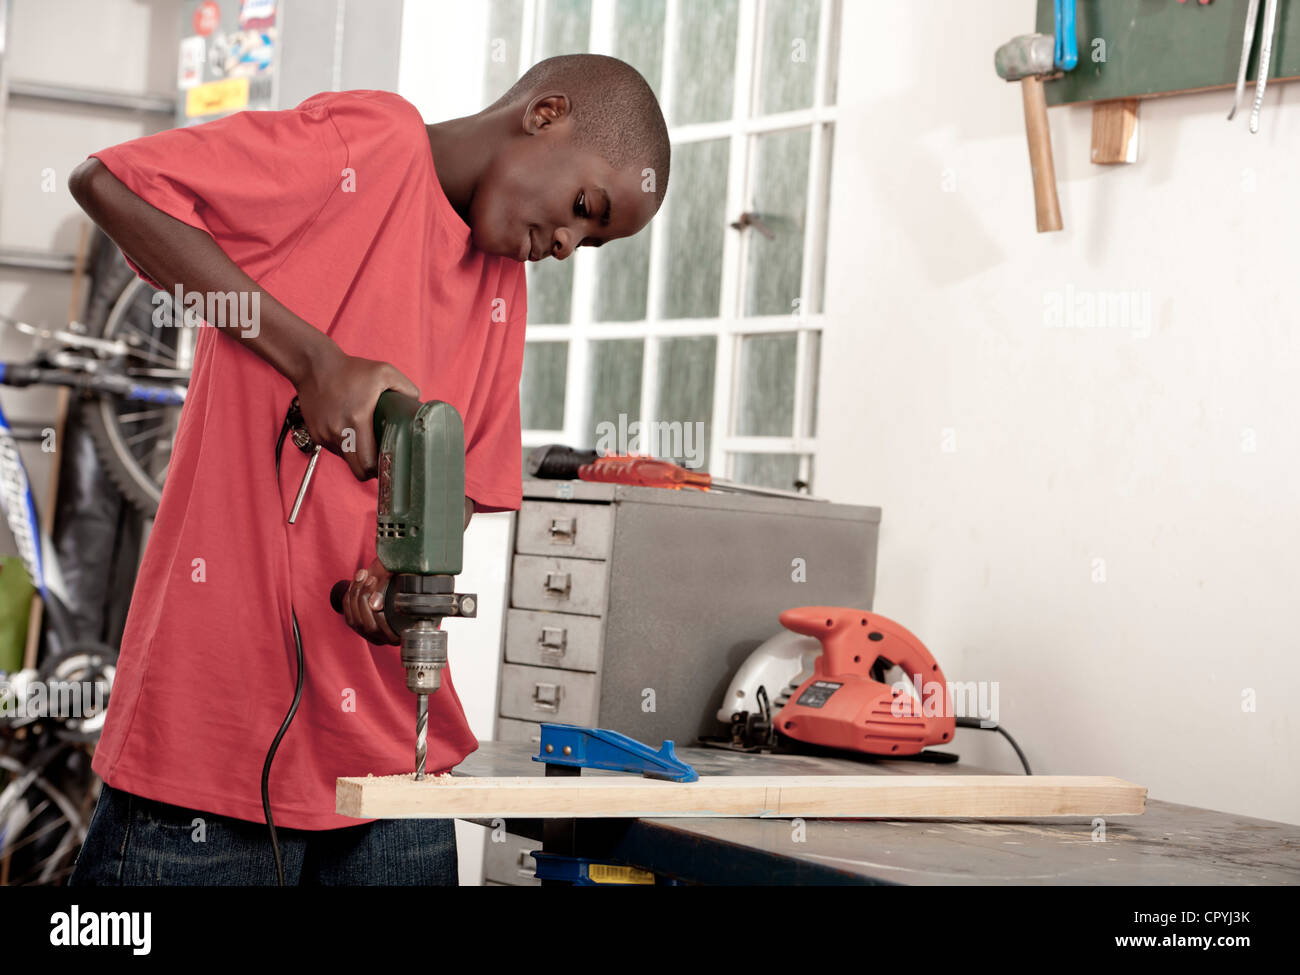 African child using drill in a workshop - Stock Image